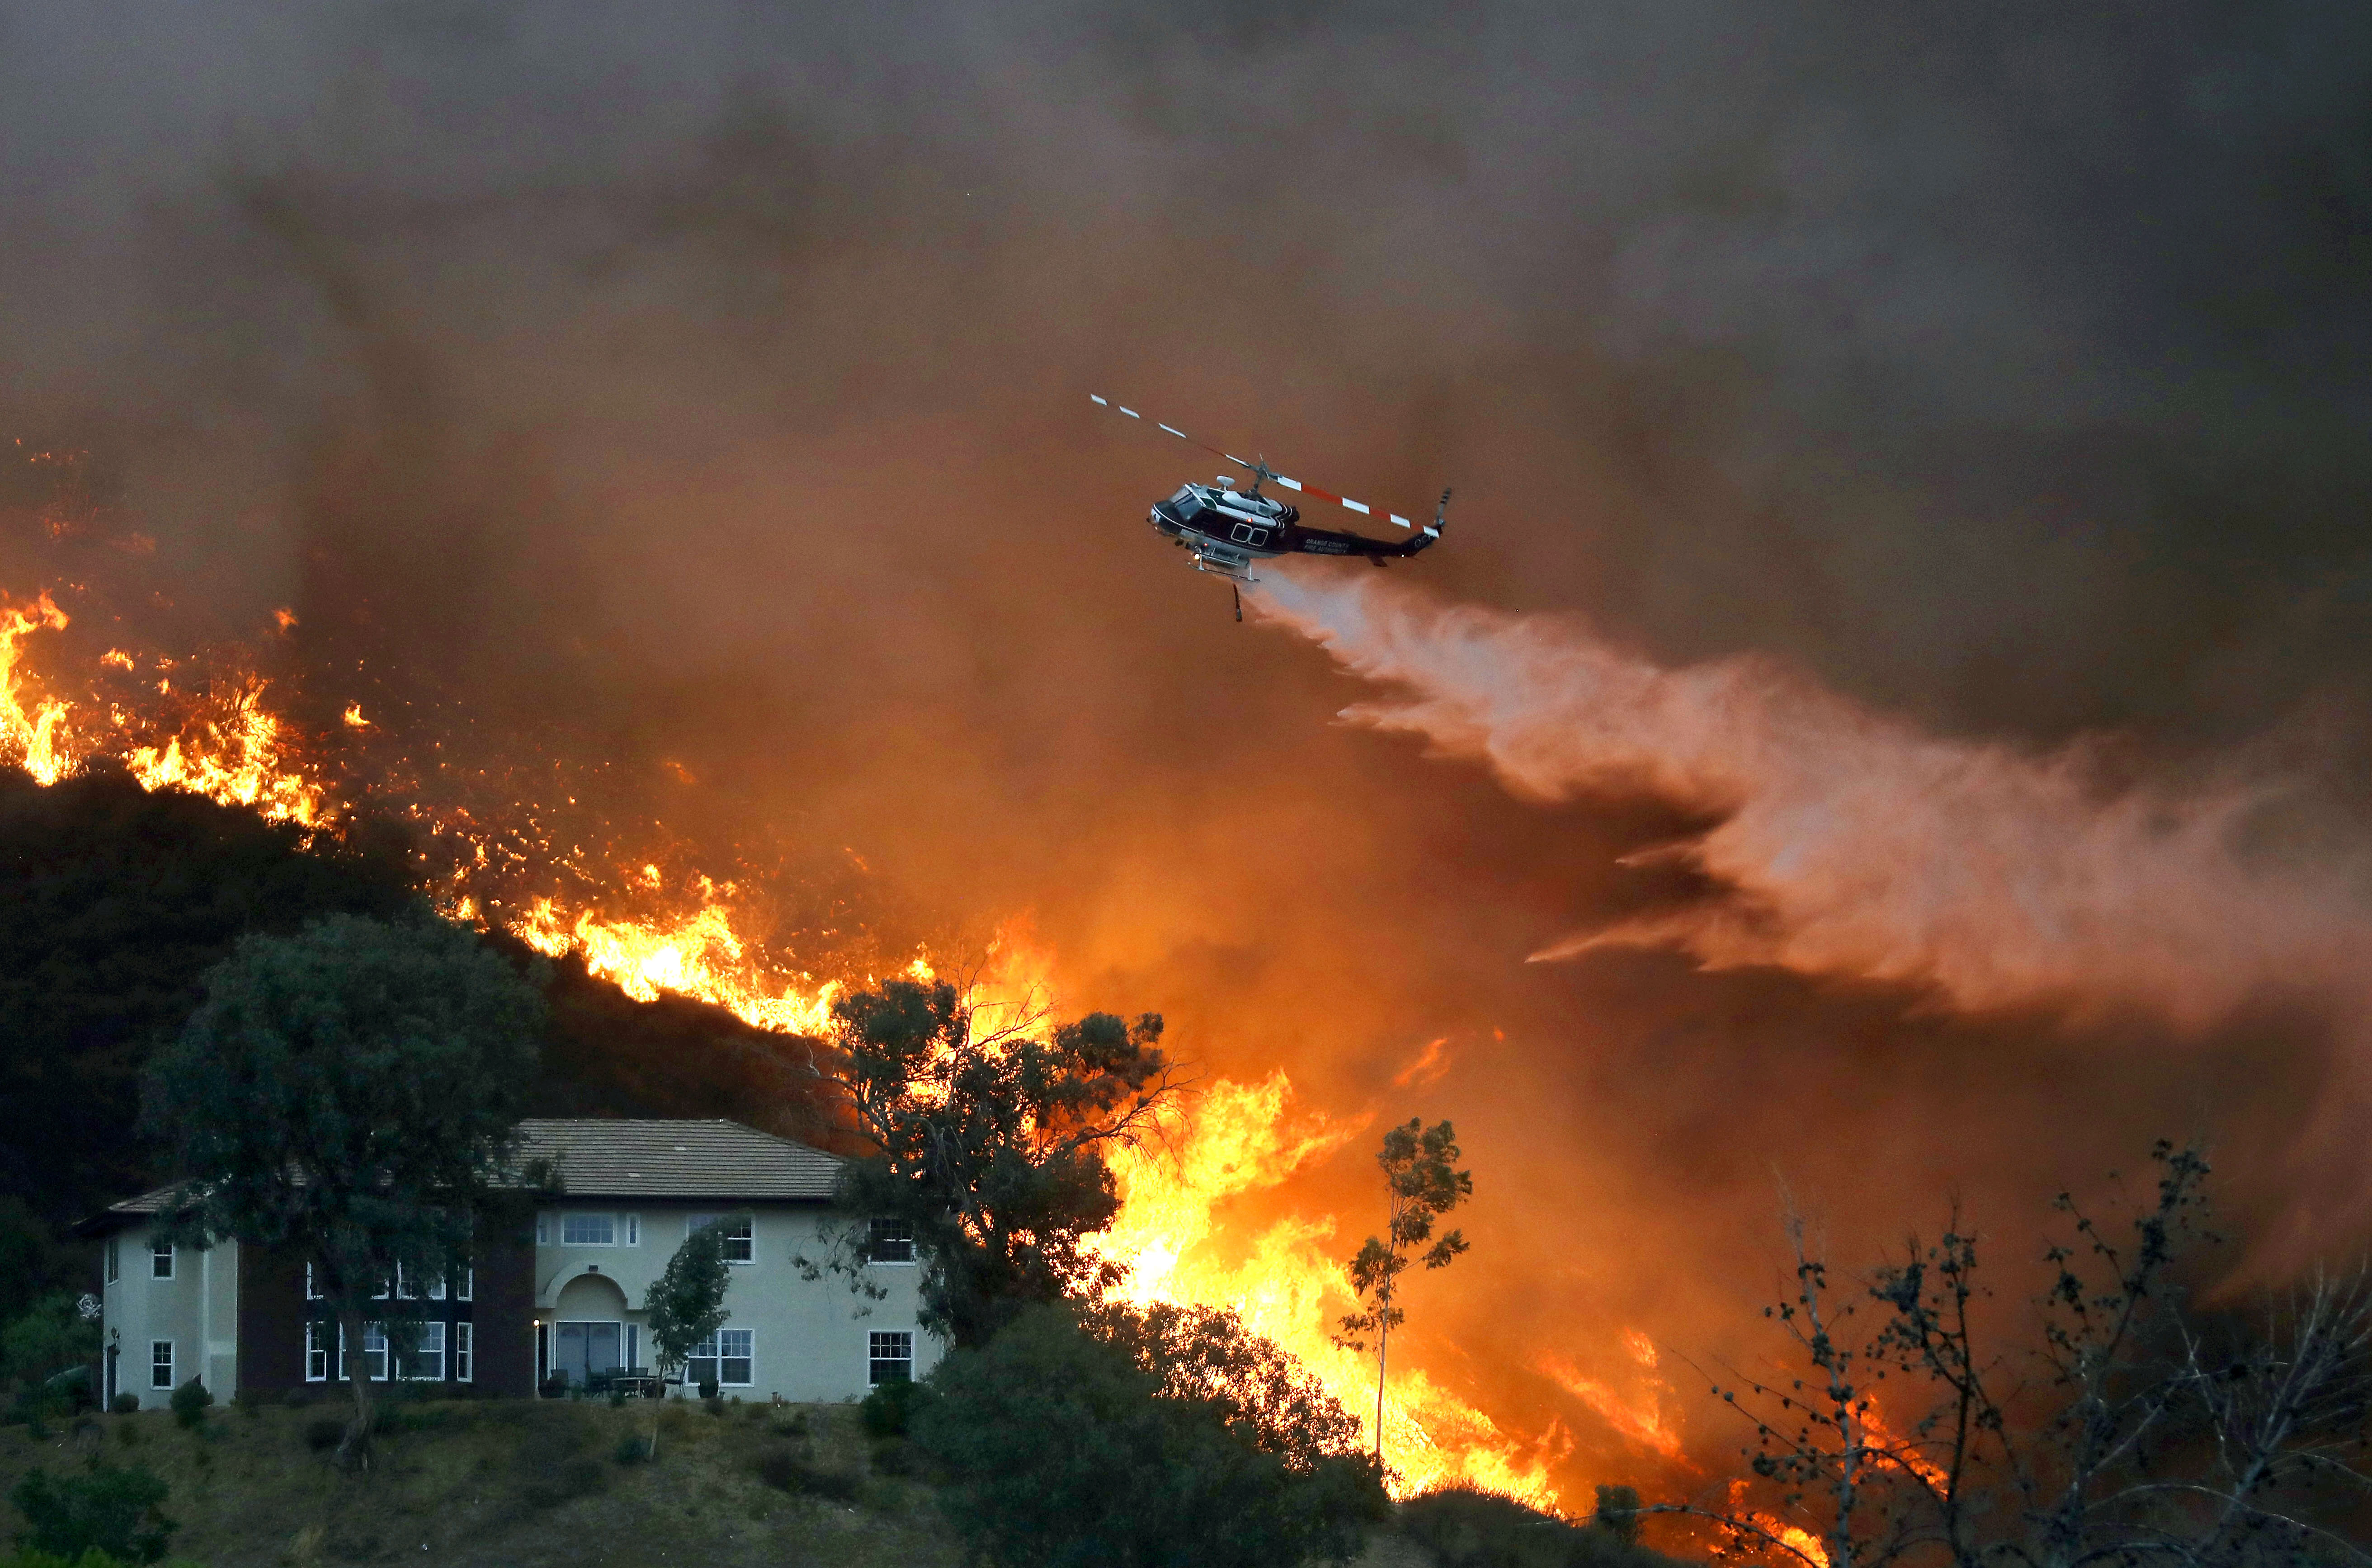 A firefighting helicopter makes a water drop as the Holy Fire burns near homes on August 9, 2018 in Lake Elsinore, California. The fire continues to grow amidst a heat wave and has now burned 10,236 acres while remaining just five percent contained.